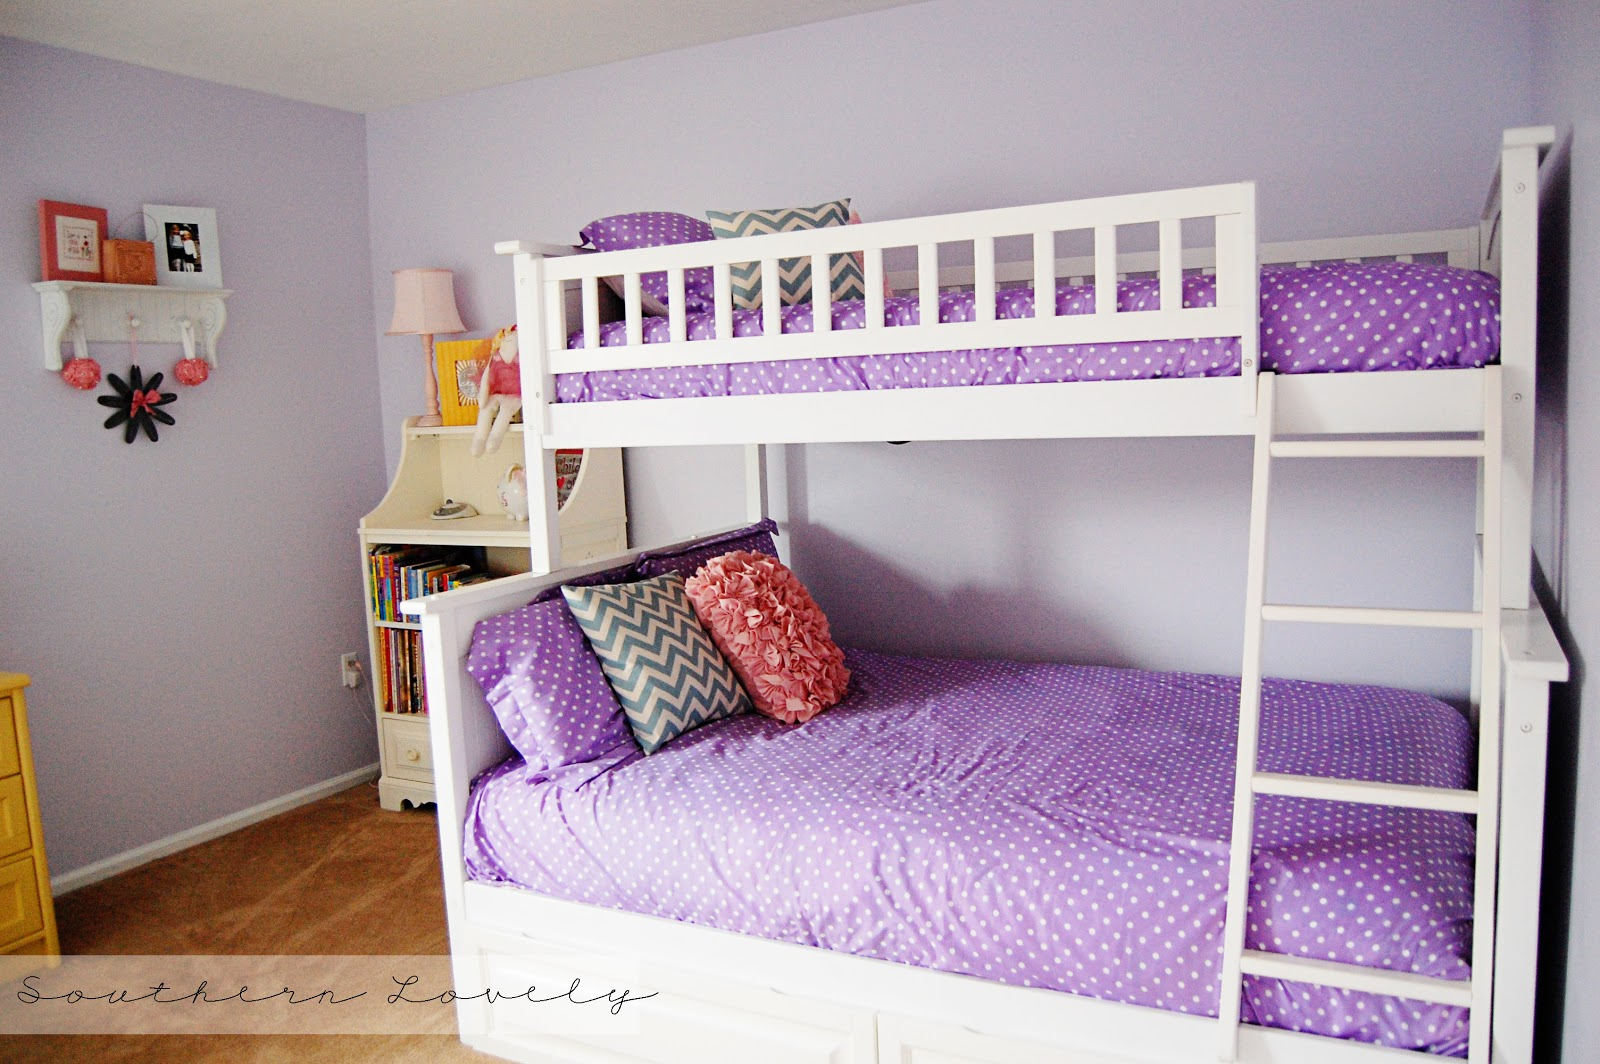 Pretty beds for girls discosparadiso - Bed for girls room ...